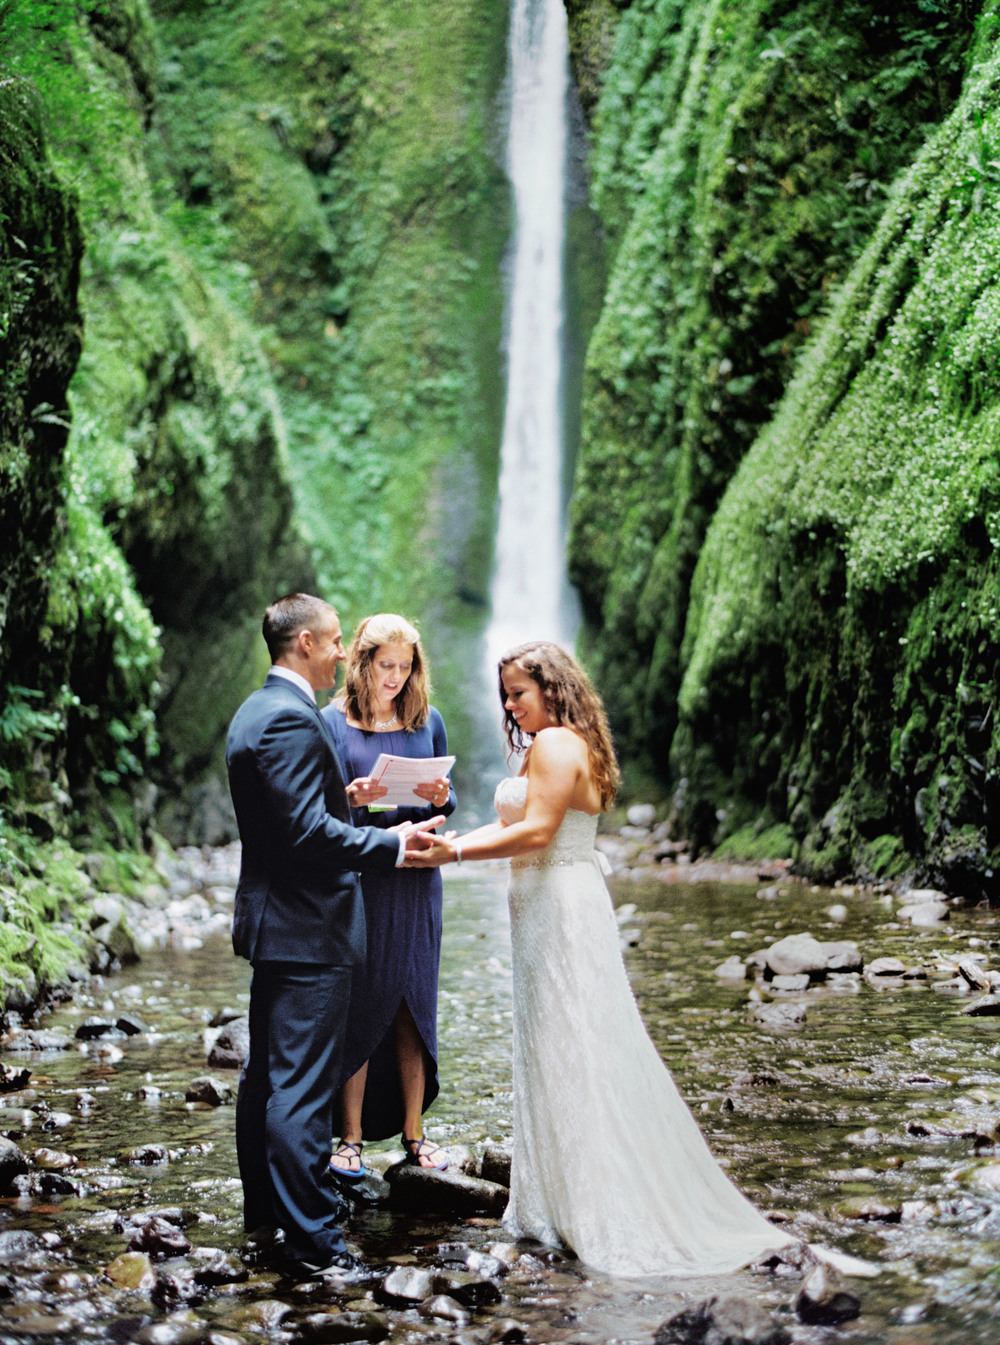 055OneontaGorge+Elopement+Photography+Videography+Oregon+OutliveCreative.jpg